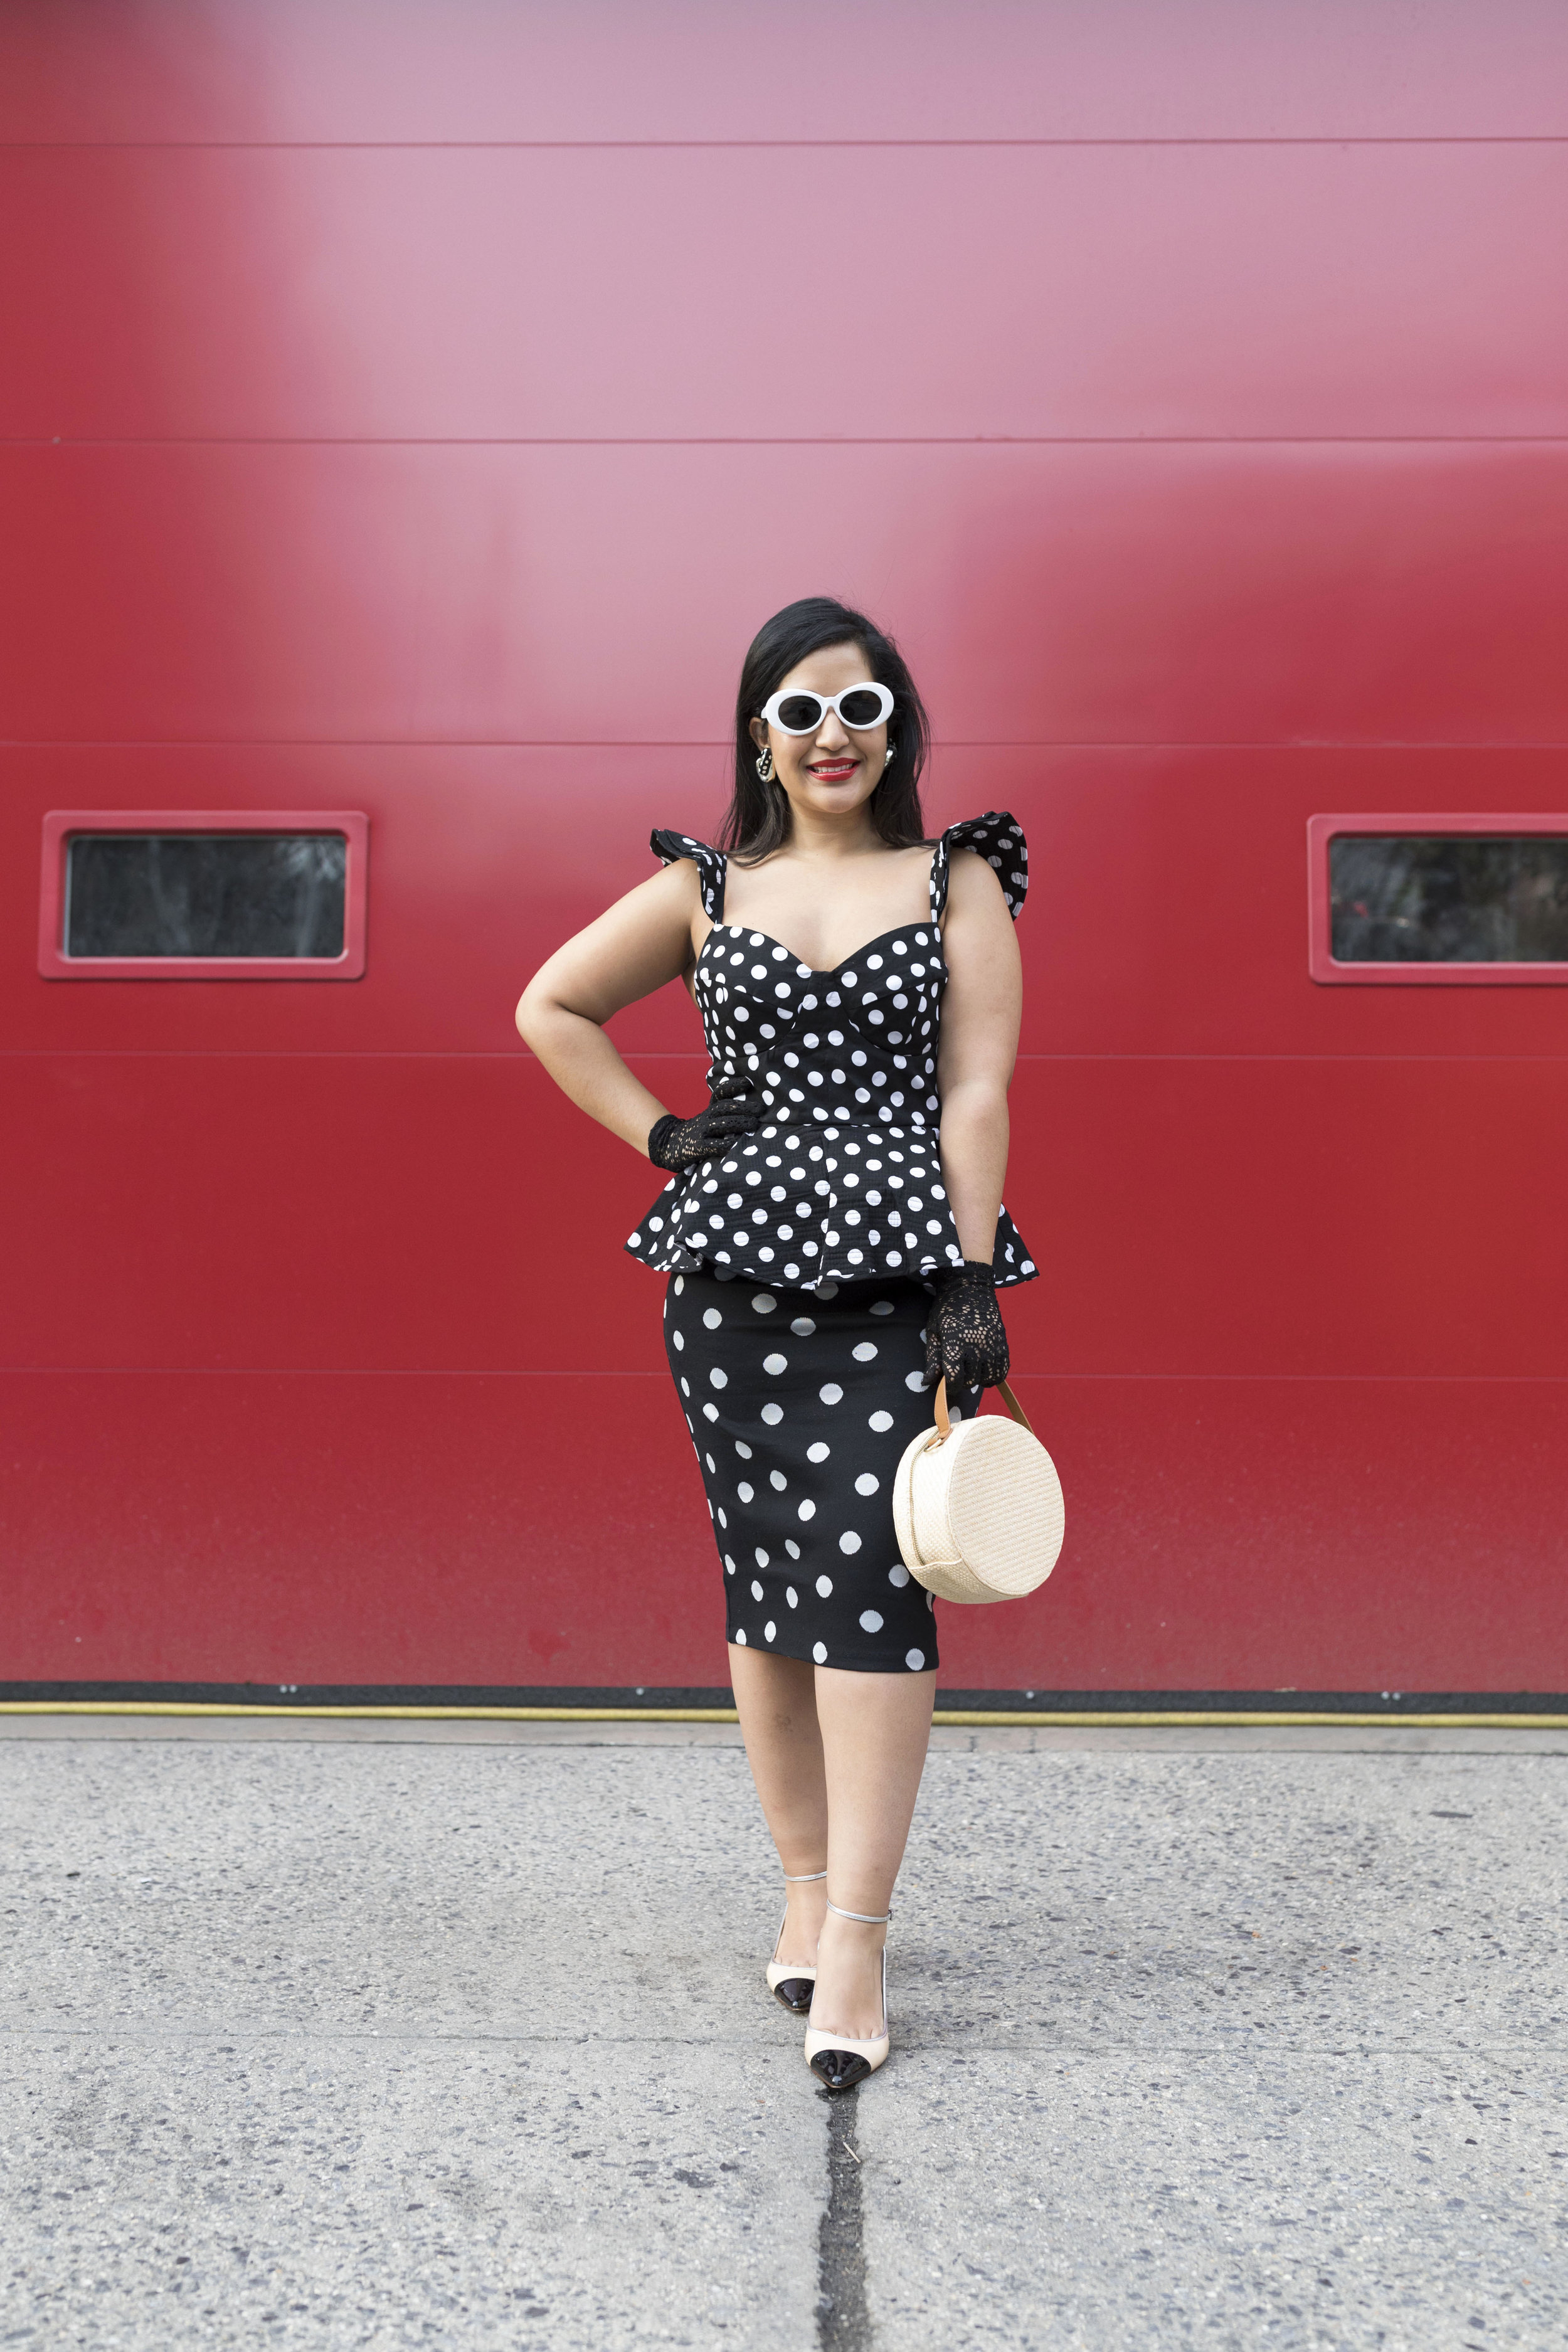 Krity S x Polka Dots x Spring Outfit16.jpg